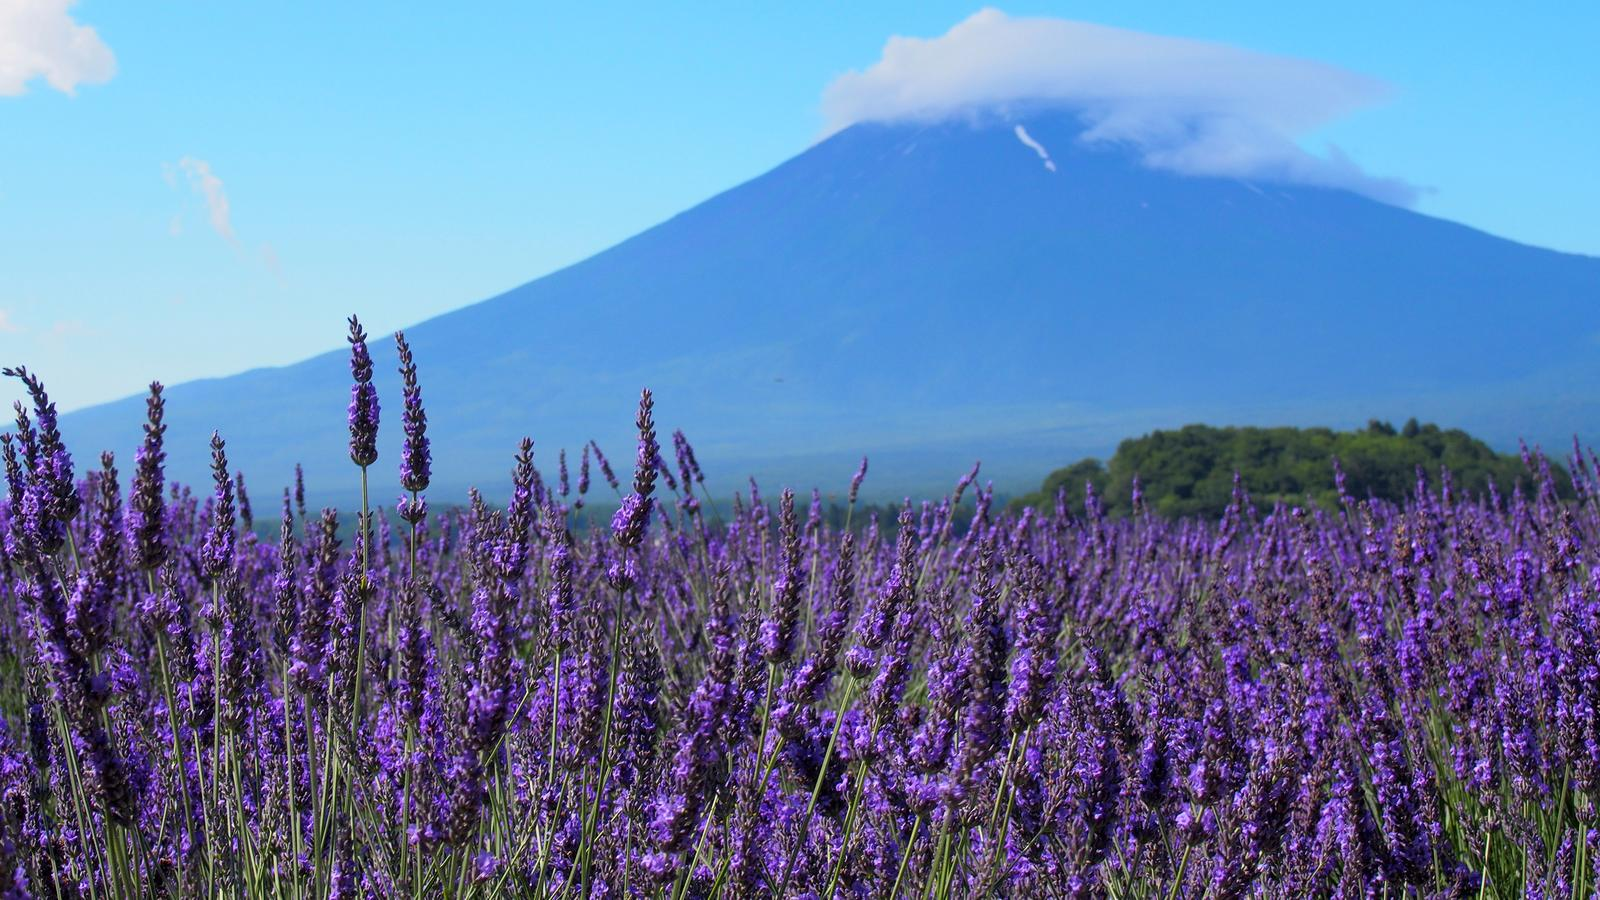 Lavender field in front of  Mount Fuji